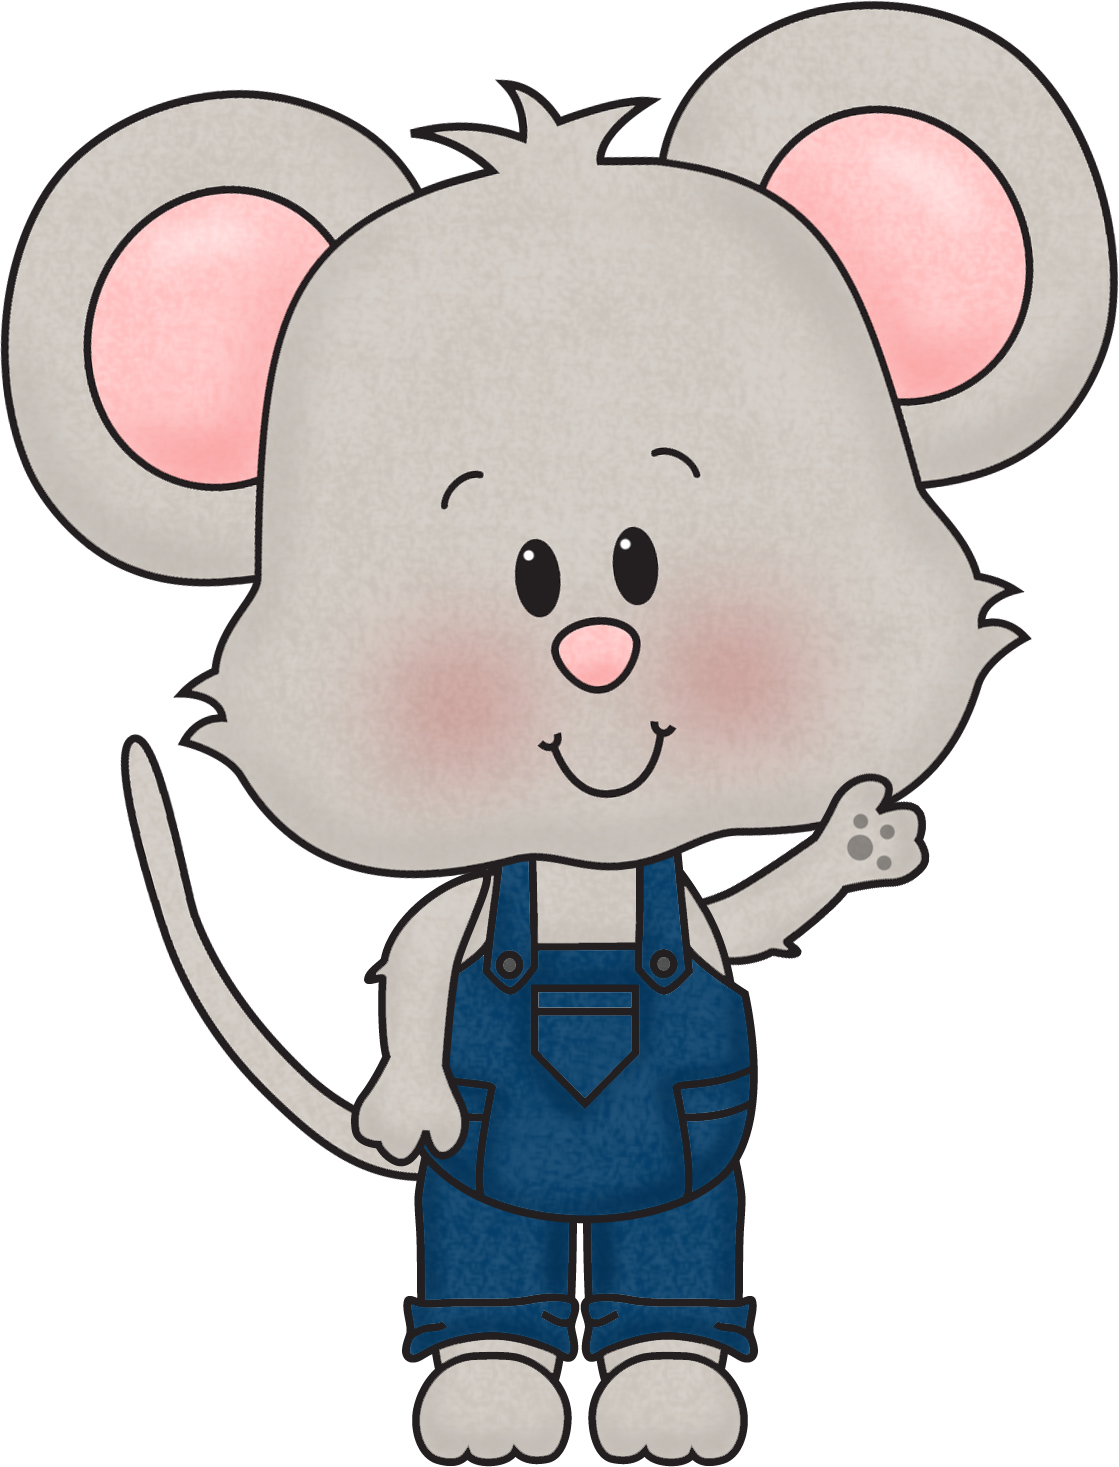 1119x1467 Cute Mouse Clipart Free Images 2